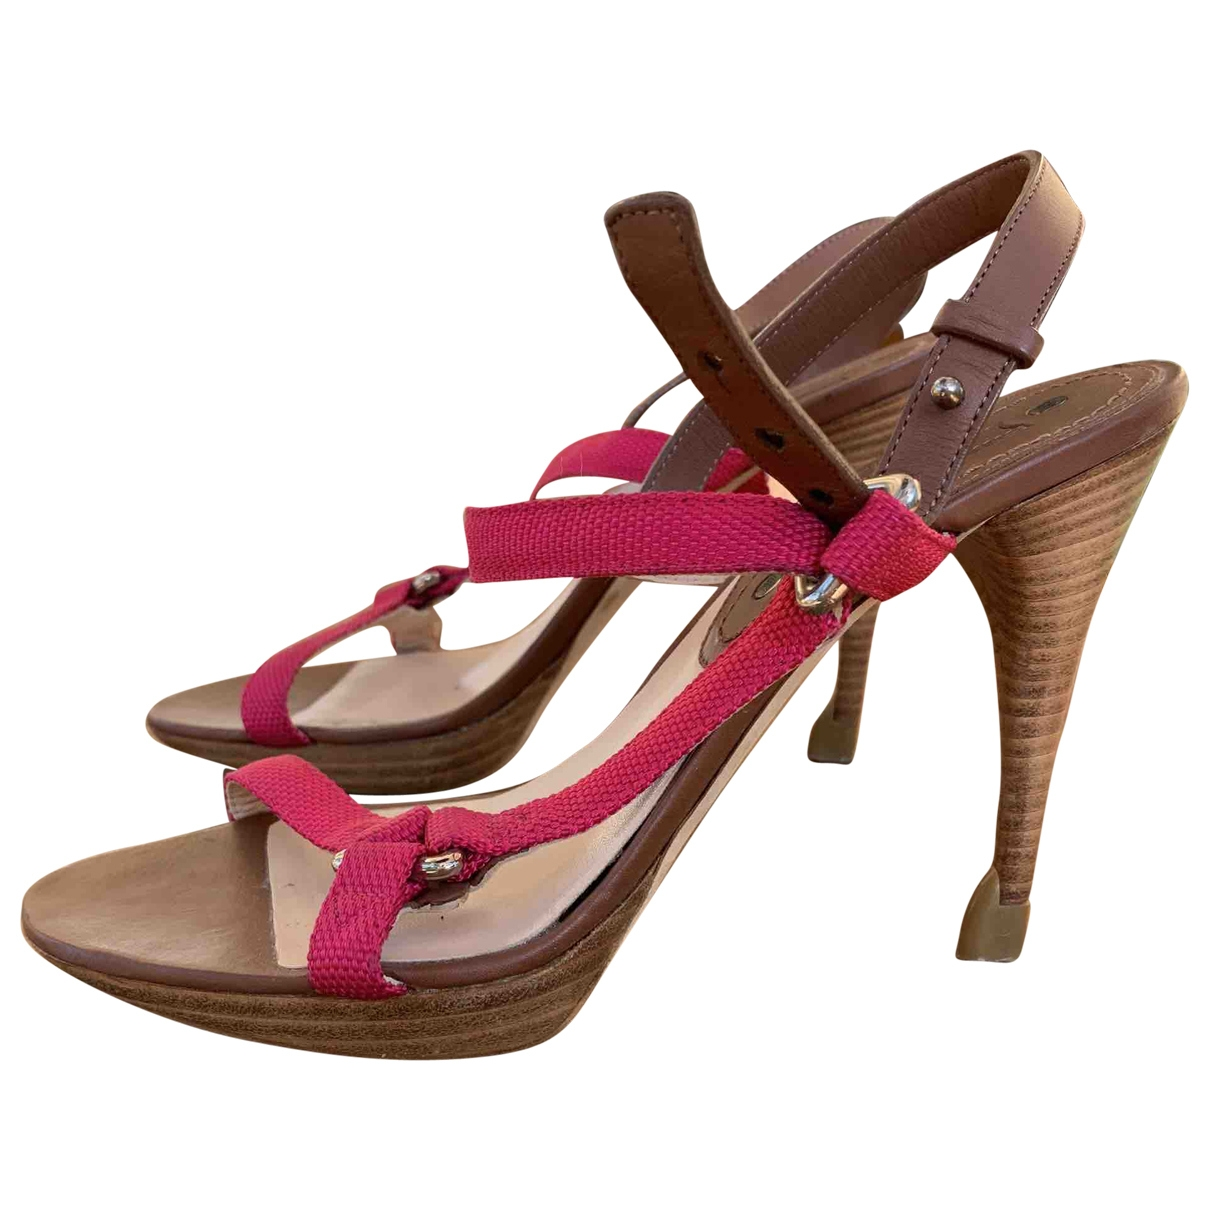 Celine \N Pink Leather Sandals for Women 37.5 EU